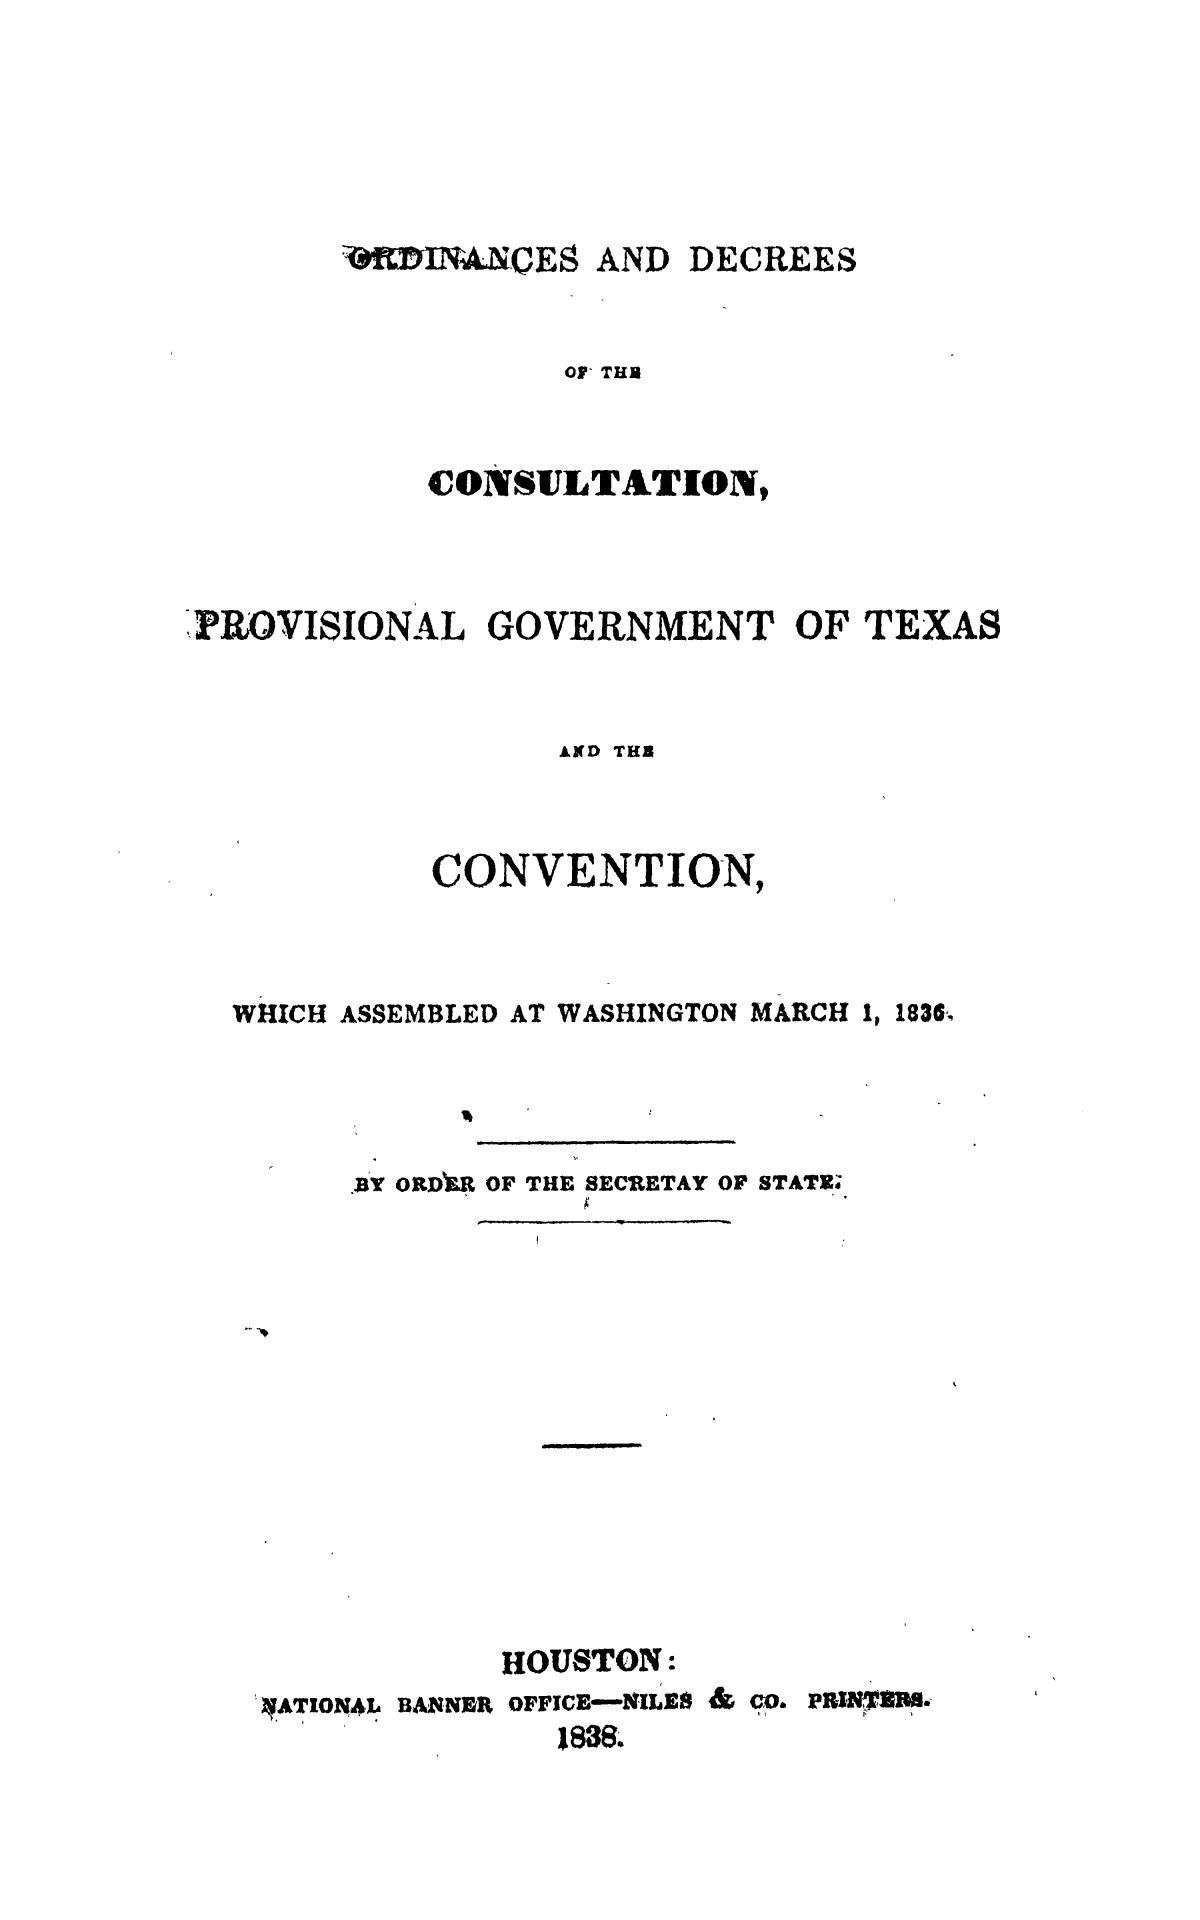 Ordinances and Decrees of the Consultation, Provisional Government of Texas and the Convention, Which Assembled at Washington March 1, 1836.                                                                                                      Title Page